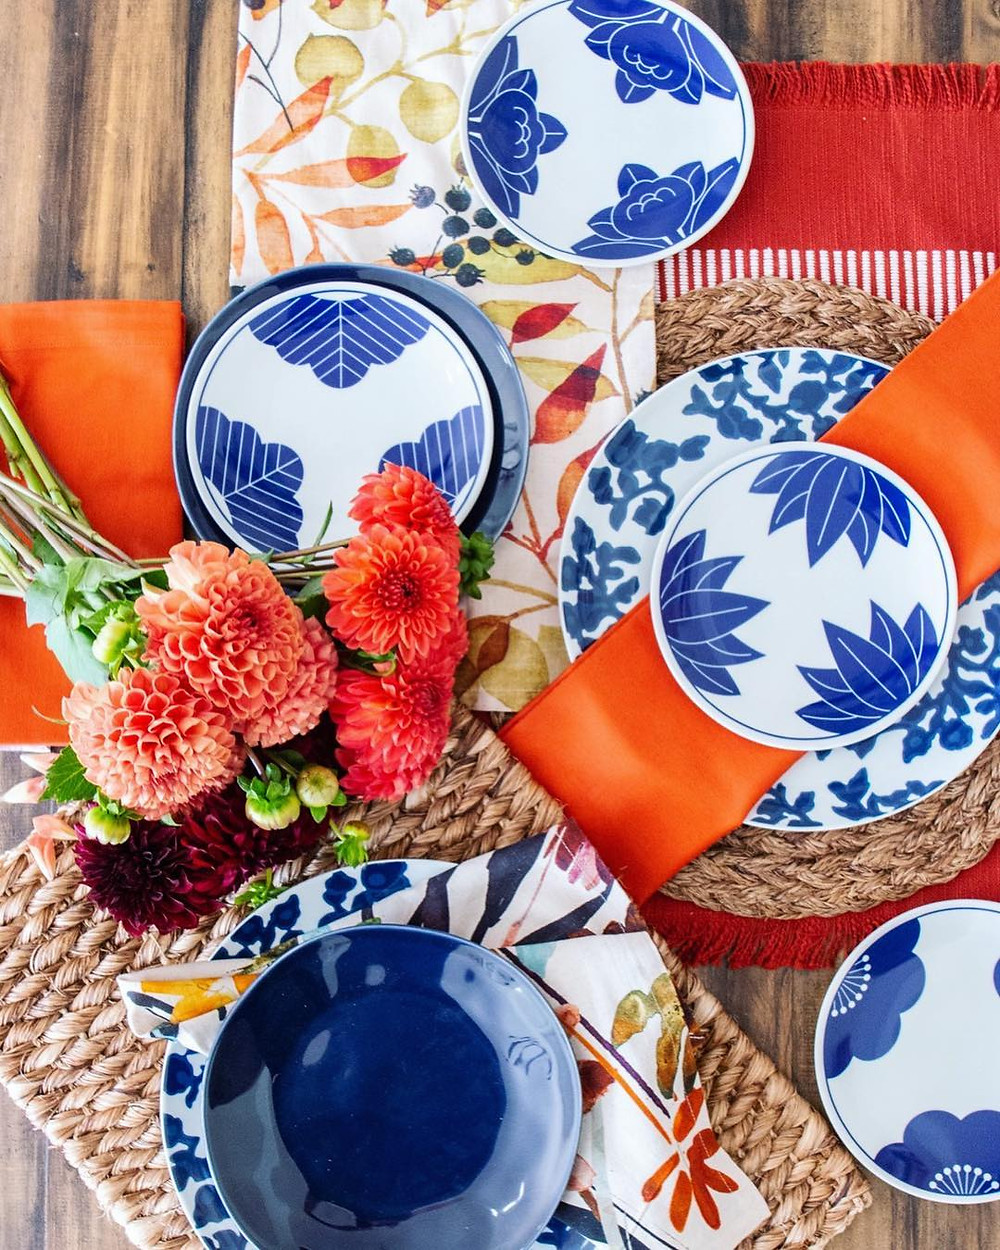 Tablescape with red linens, blue and white china plate settings, colorful napkins, and a floral arrangement